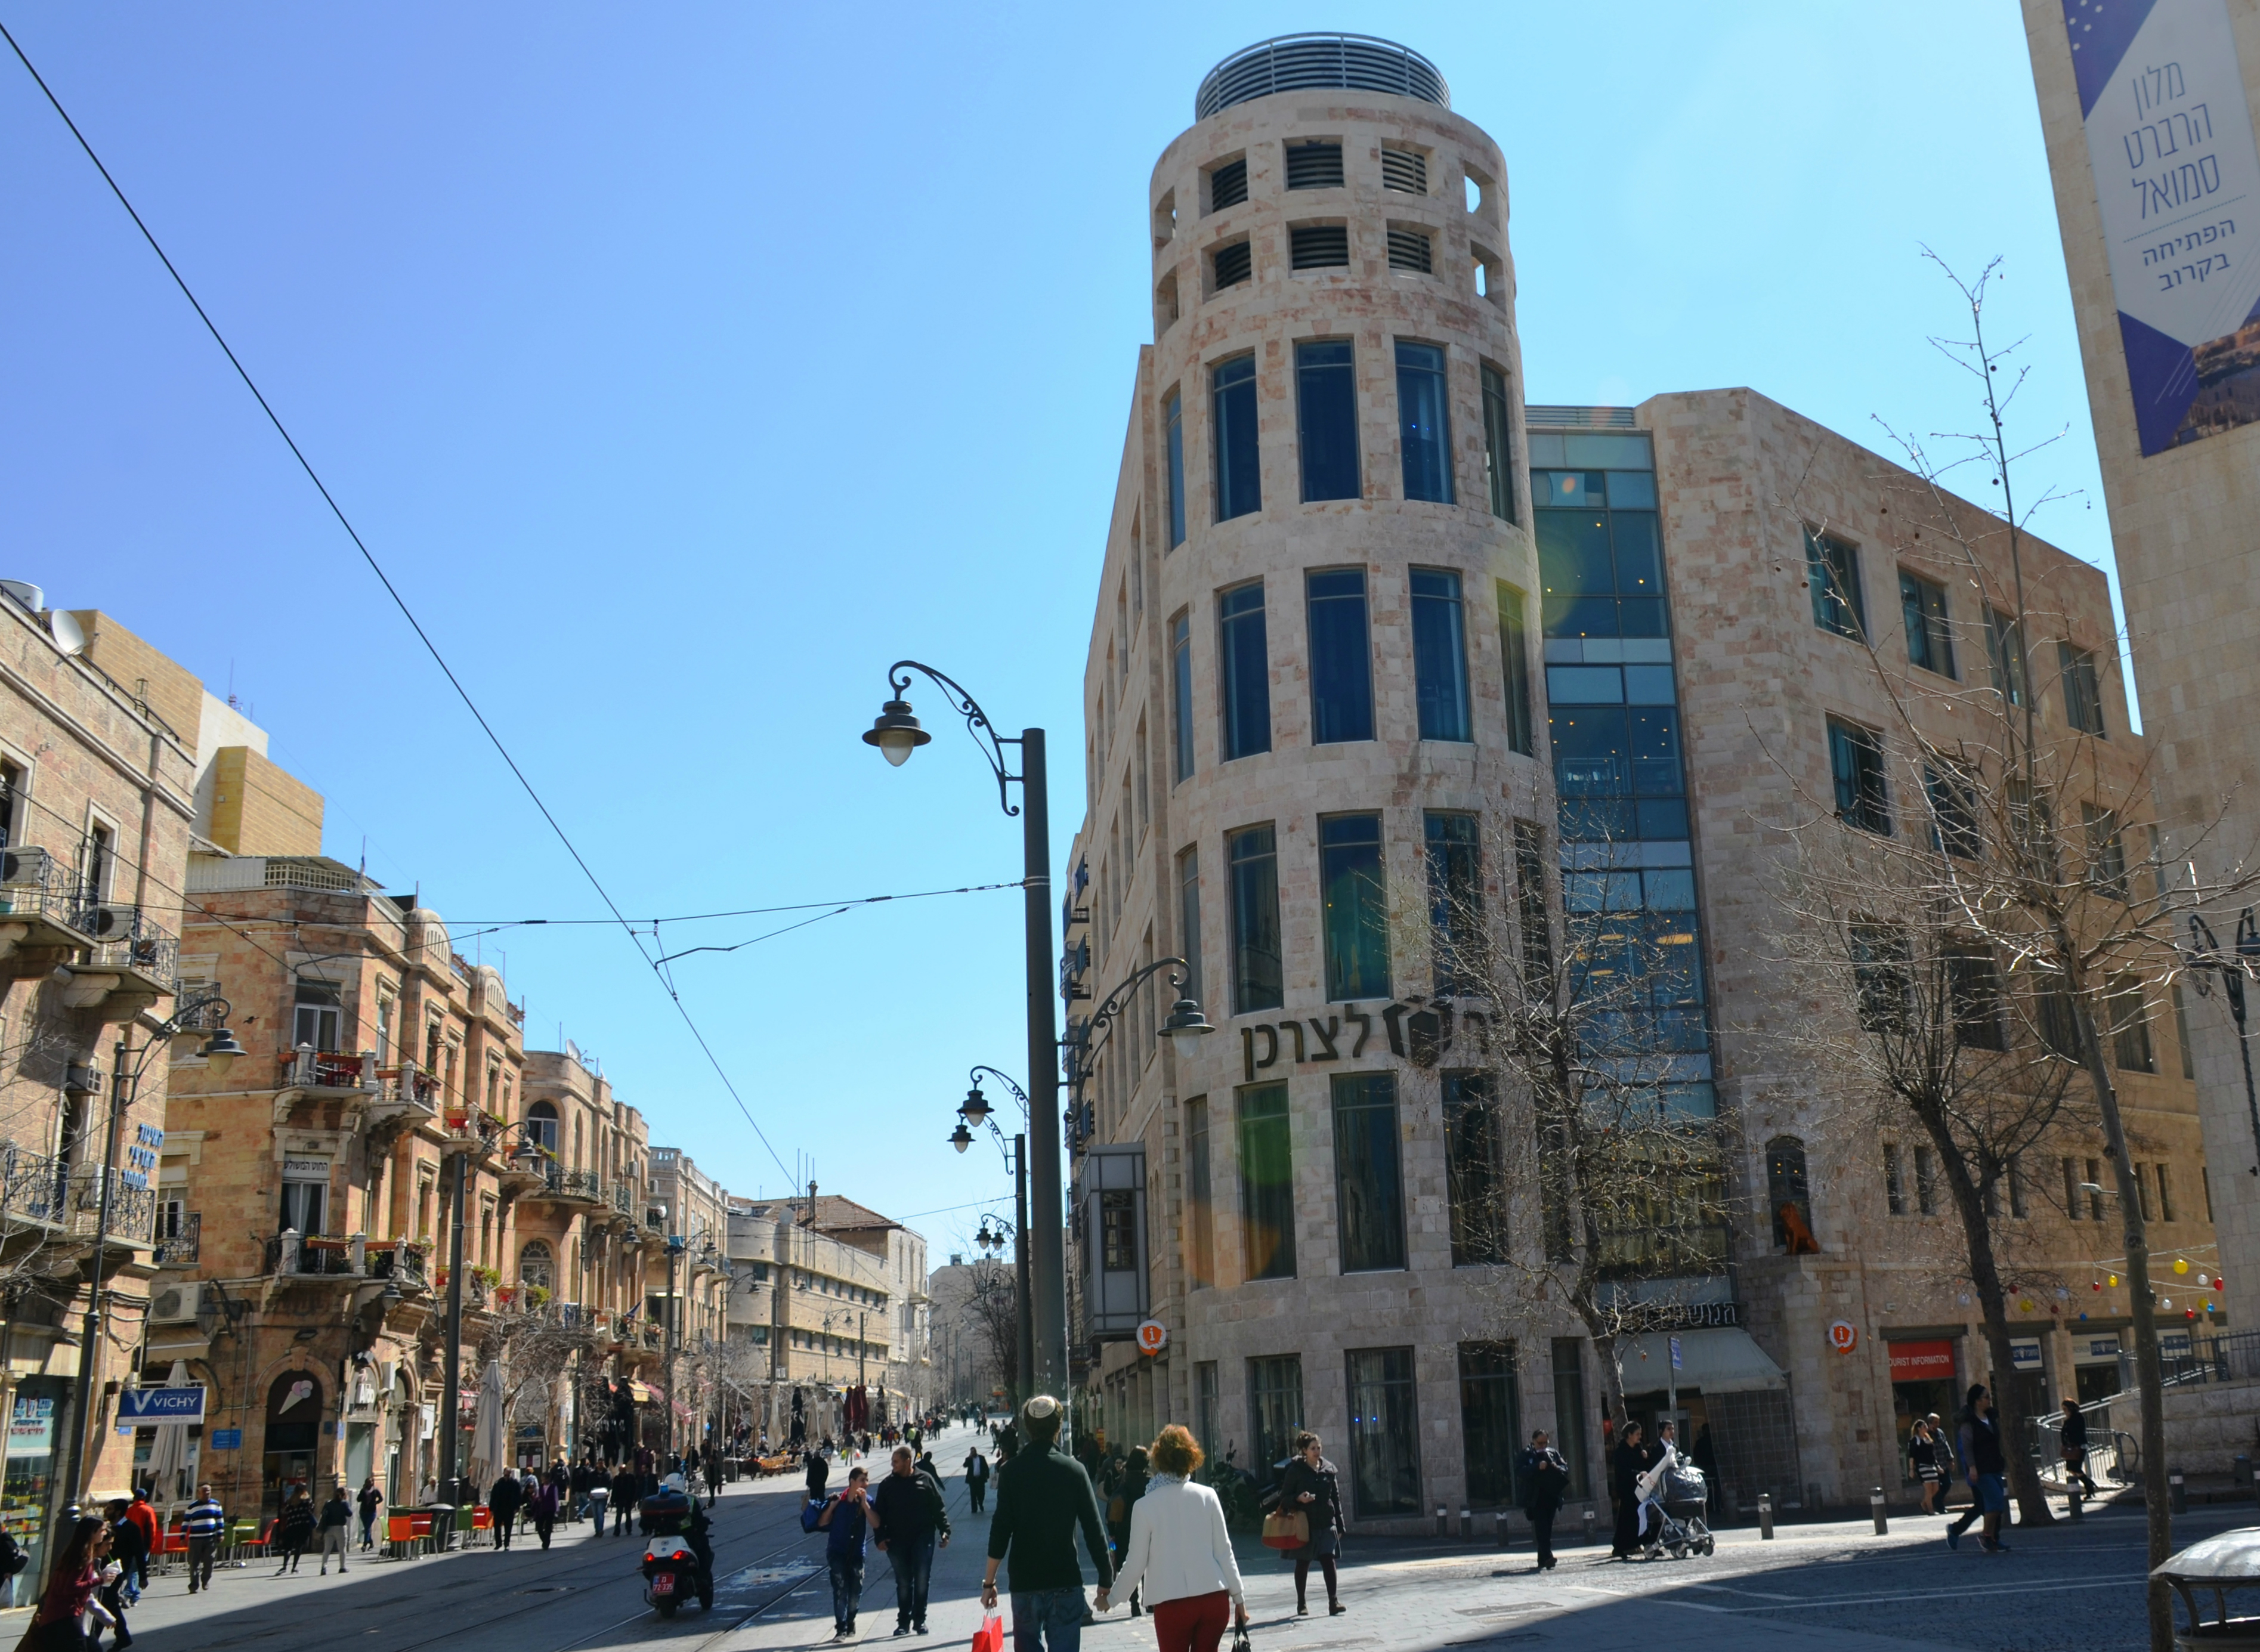 Jerusalem Israel Mashbir department store